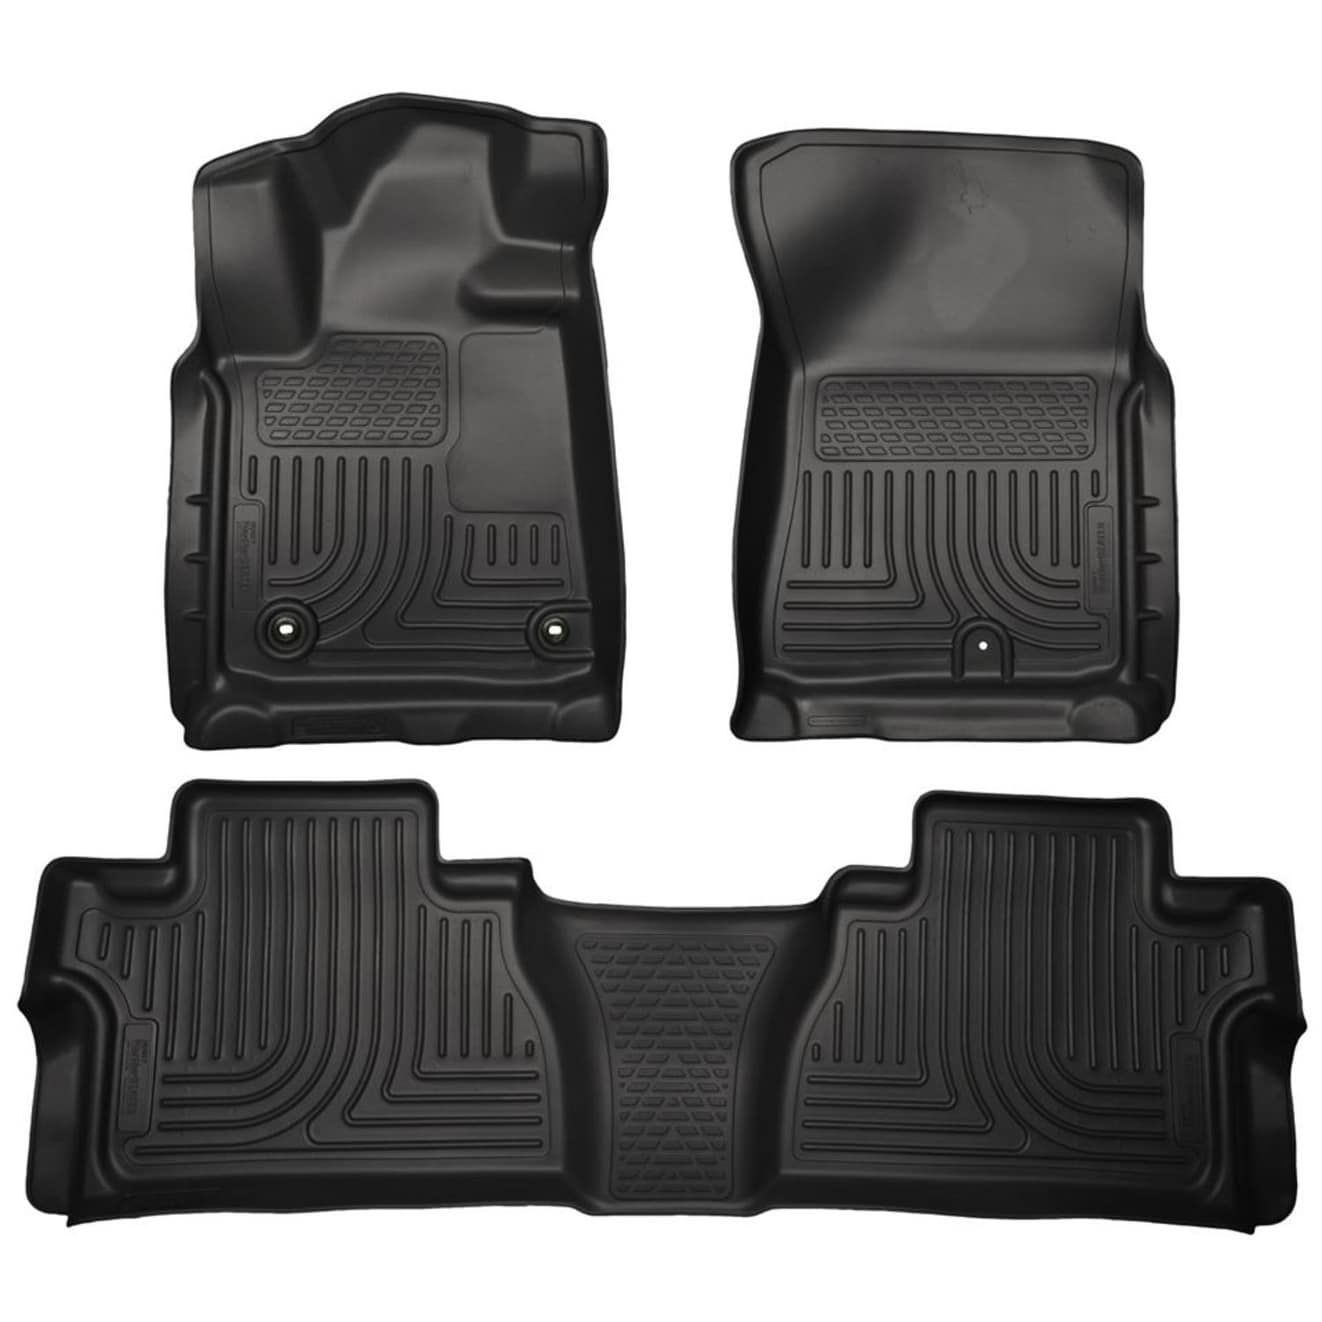 Husky Weatherbeater 2014 2016 Toyota Tundra Doublecab Black Front Rear Floor Mats Liners Husky Liners Tundra Crewmax Floor Liners